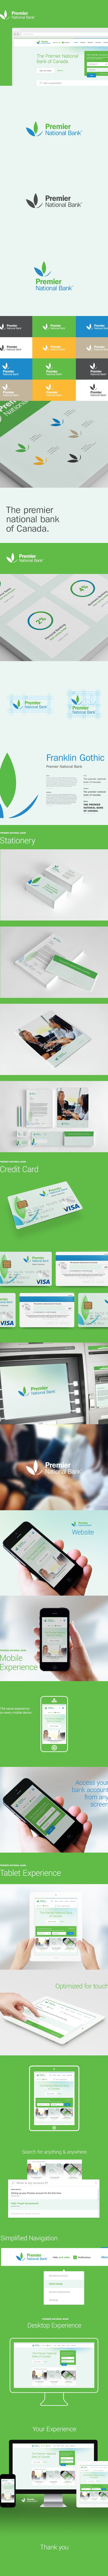 Premier National Bank Branding by Amit Jakhu, via Behance